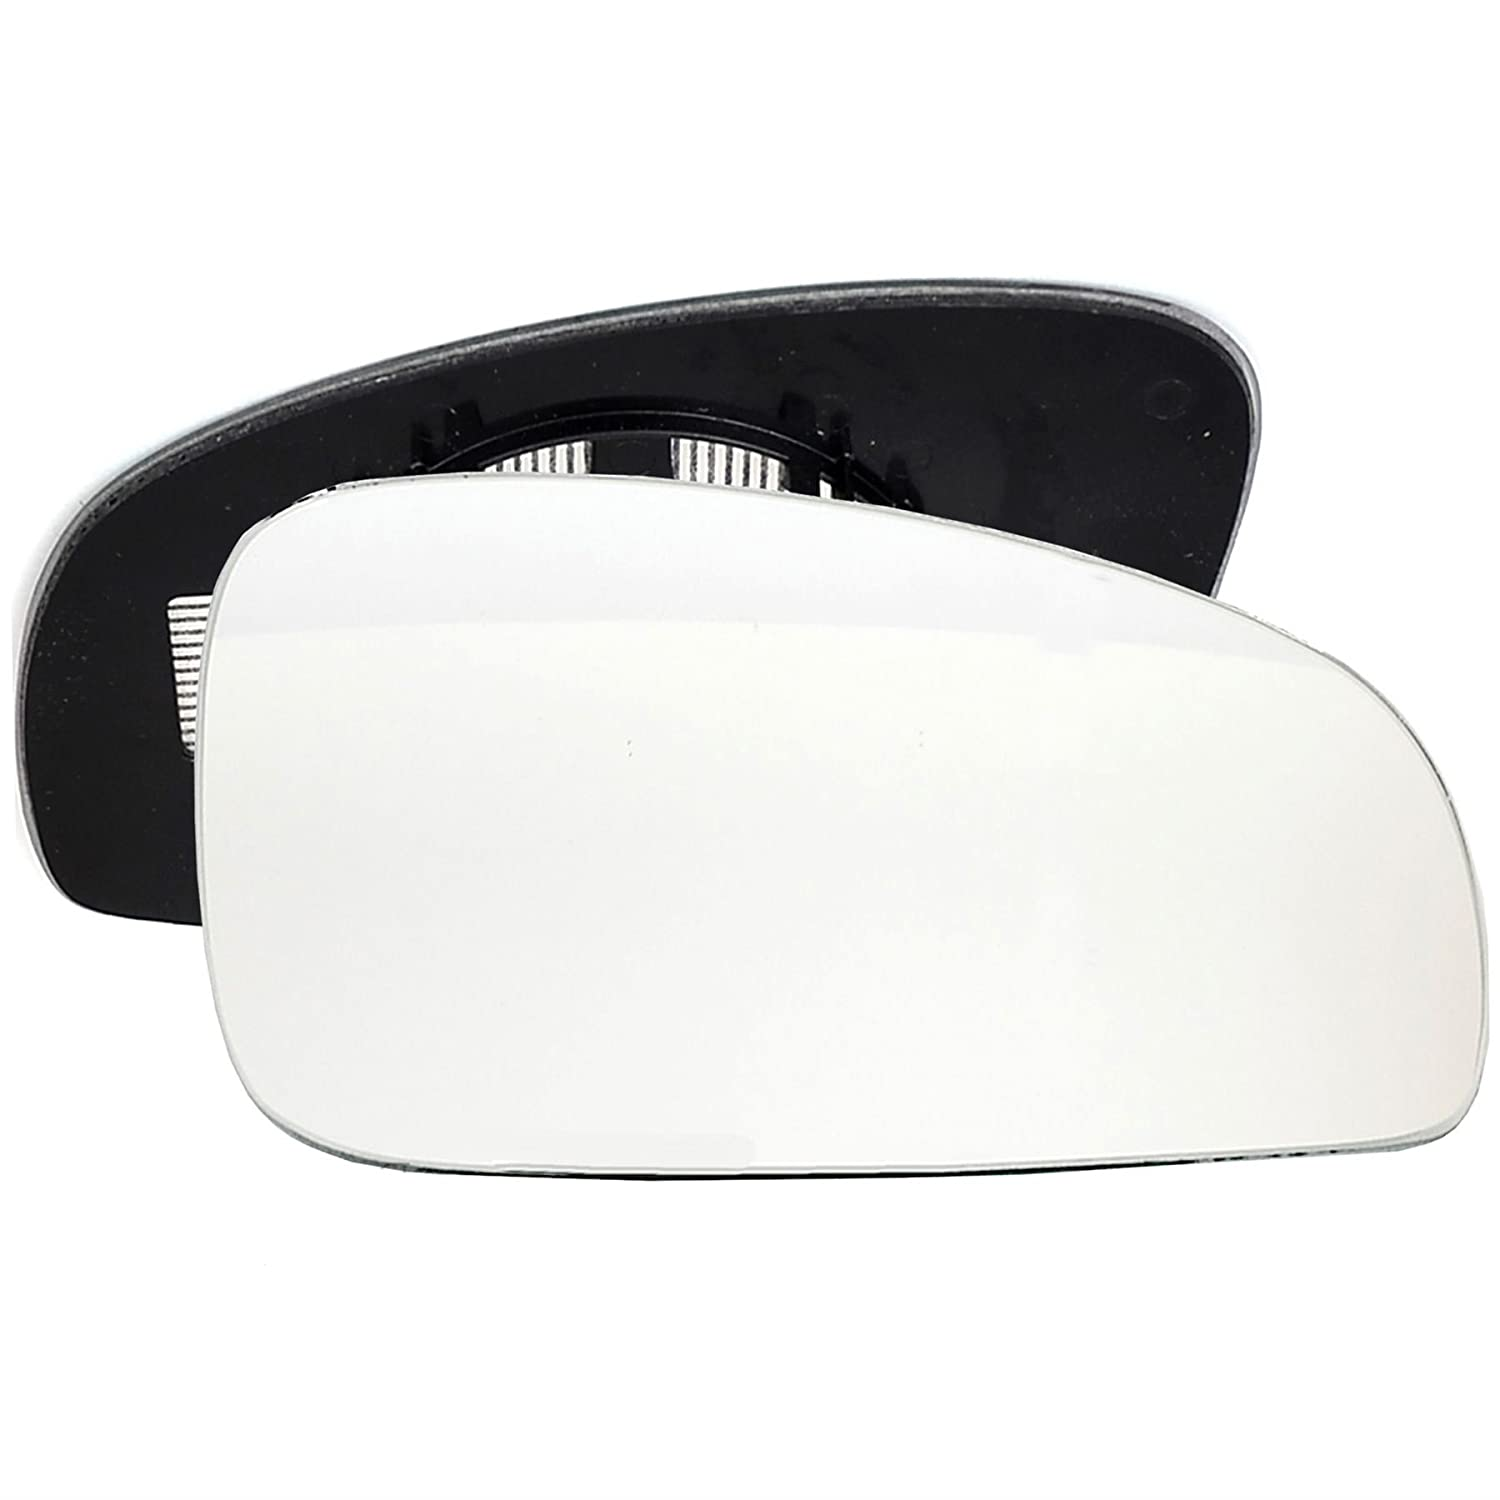 Right Driver side Wing door mirror glass for Skoda Fabia 2007-2014 heated